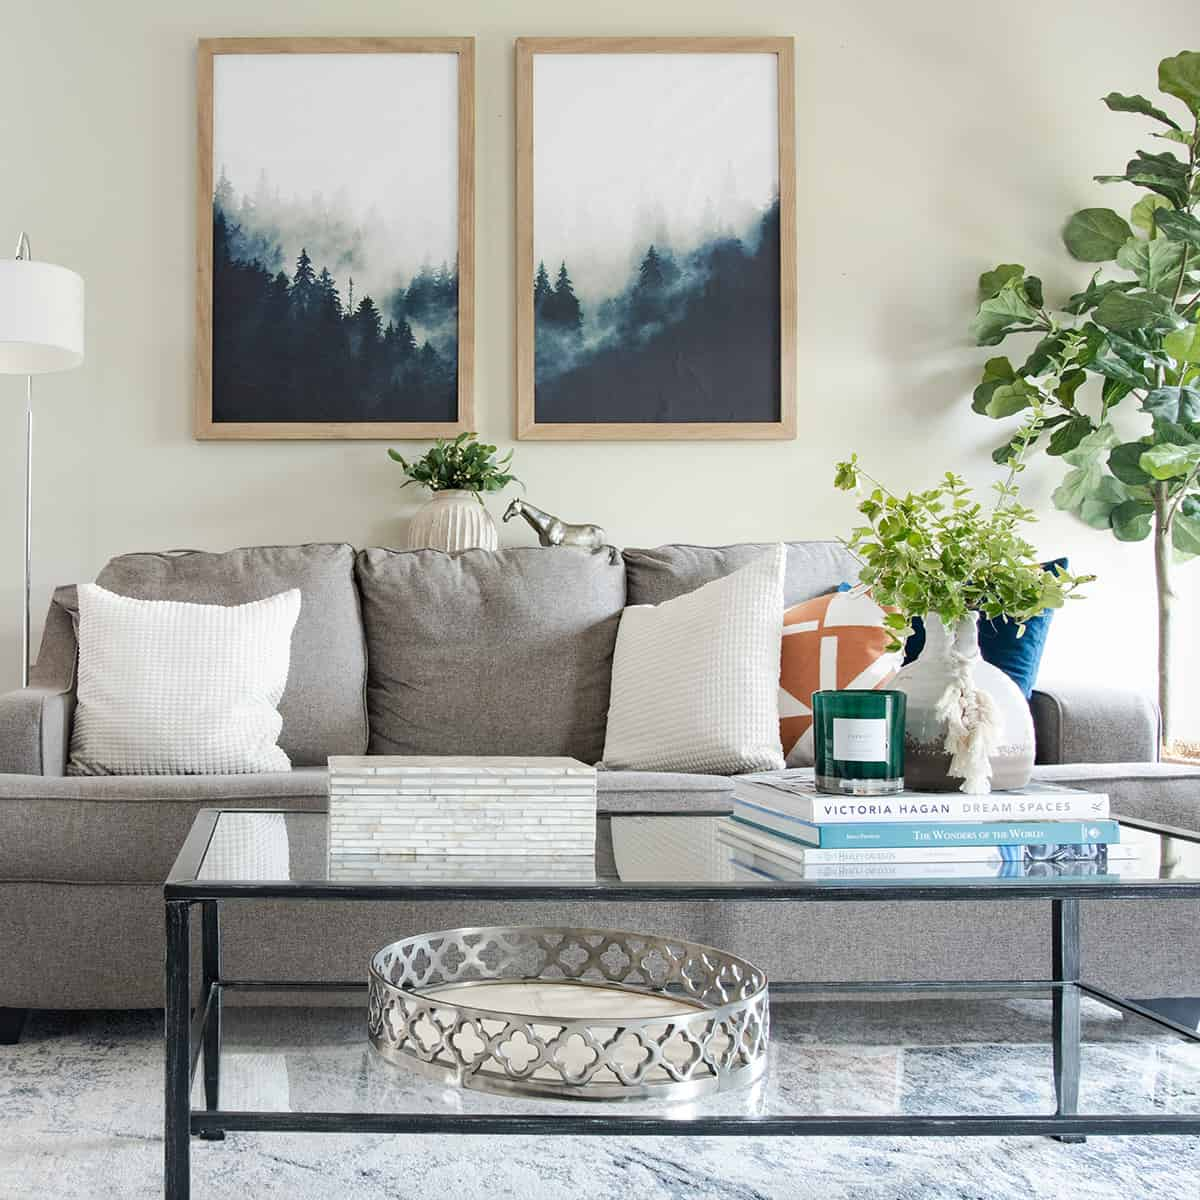 Light grey couch with colorful accents and glass coffee table filled with fresh greenery.